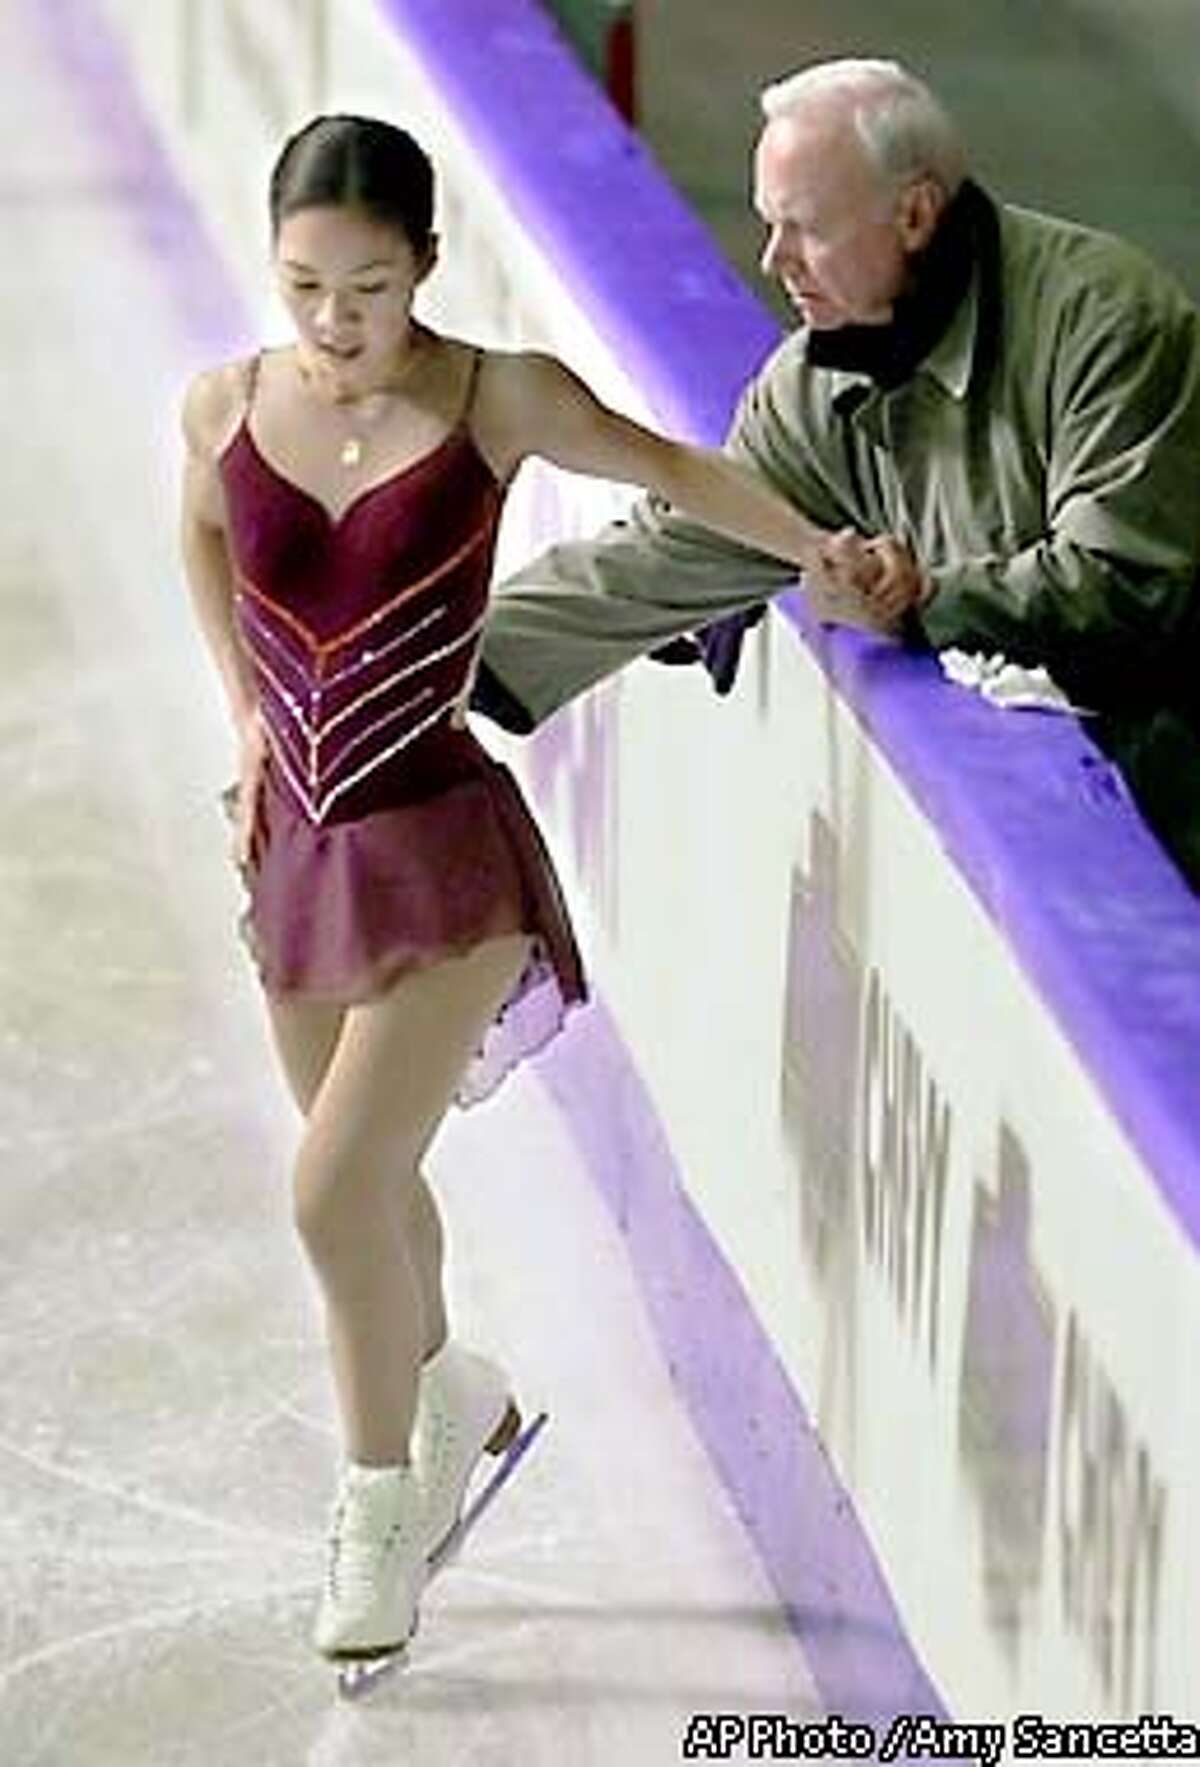 FILE--Three-time world champion Michelle Kwan, of the U.S., works with her coach Frank Carroll during a practice session for her upcoming appearance in the World Figure Skating Championships in Vancouver, Canada on Monday, March 19, 2001. Less than four months before the Salt Lake City Olympics, Michelle Kwan is taking the biggest gamble of her career. Kwan, the reigning world champion and a favorite to win gold in Salt Lake, announced Tuesday that she's split with longtime coach Frank Carroll. She plans to coach herself for now, though she didn't rule out working with someone in the future. (AP Photo / Amy Sancetta)